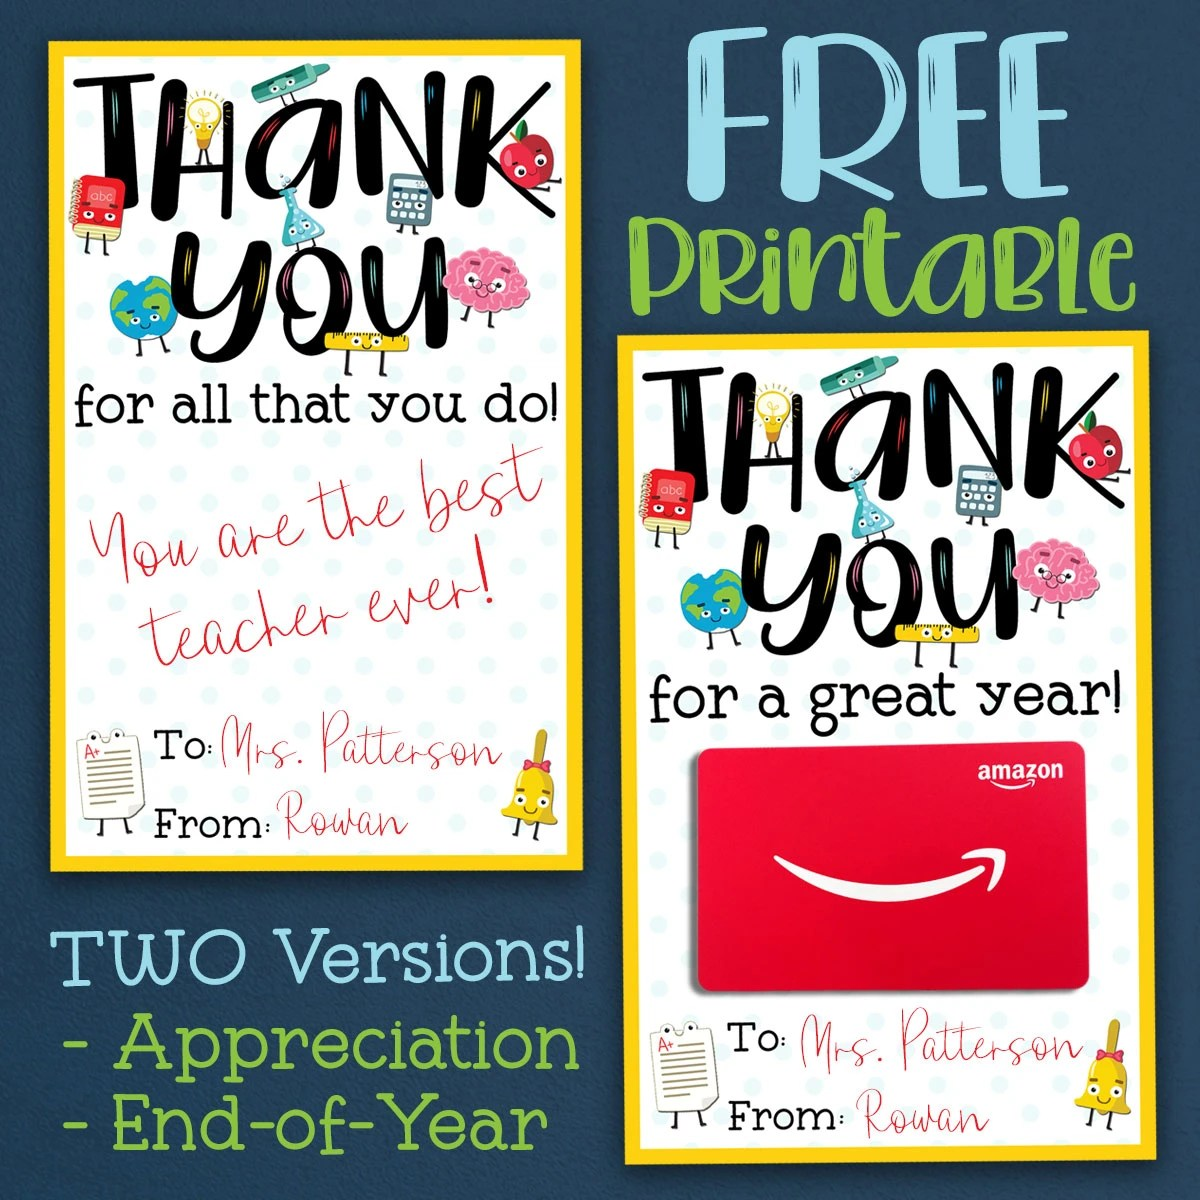 It's just a picture of Thank You Teacher Printable in a note from your teacher